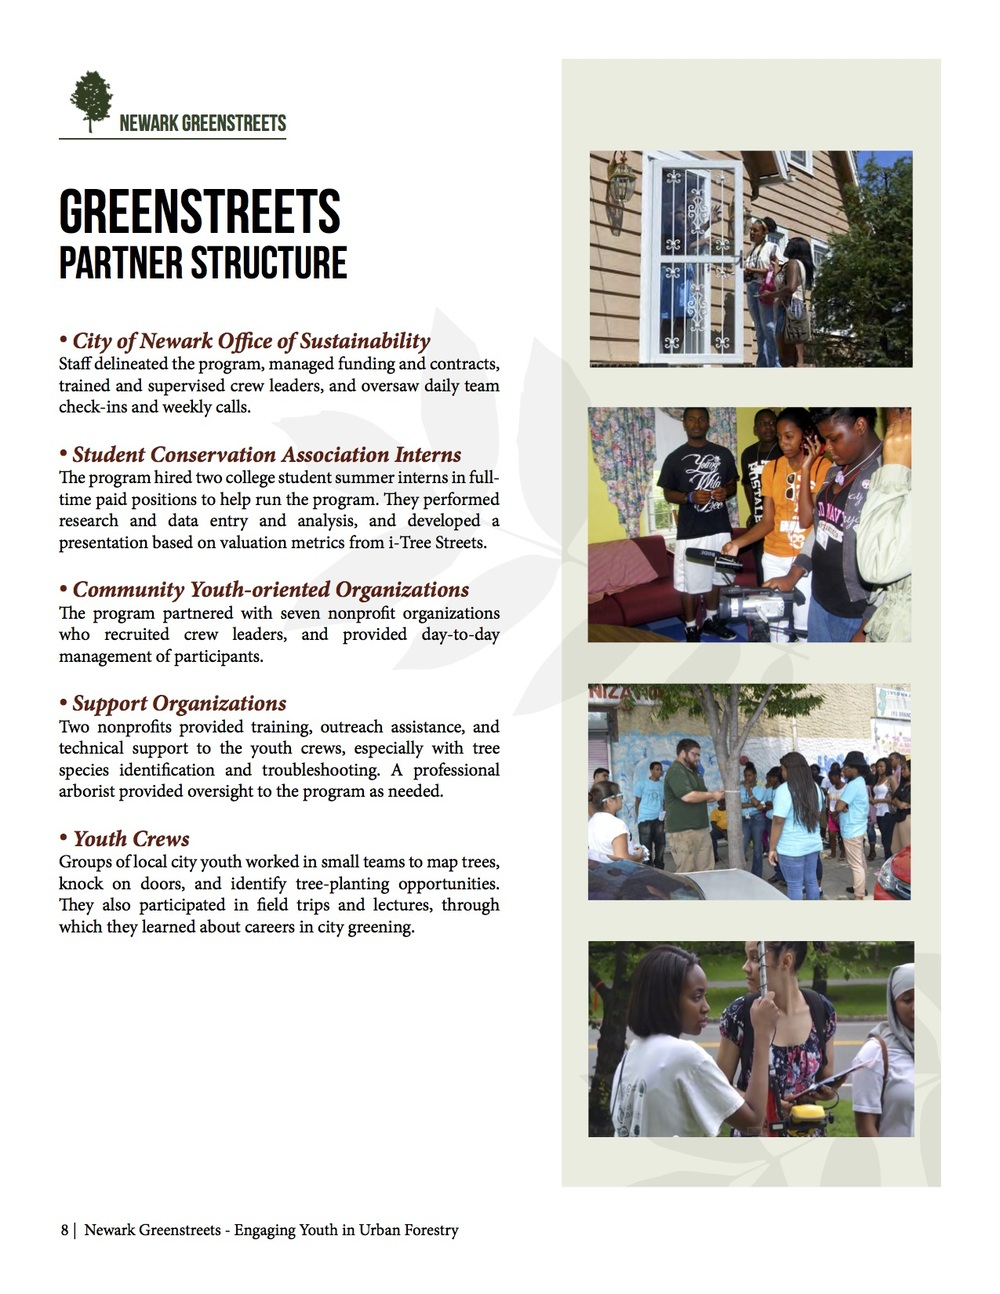 Grow Your Own_Newark Greenstreets-8.jpg